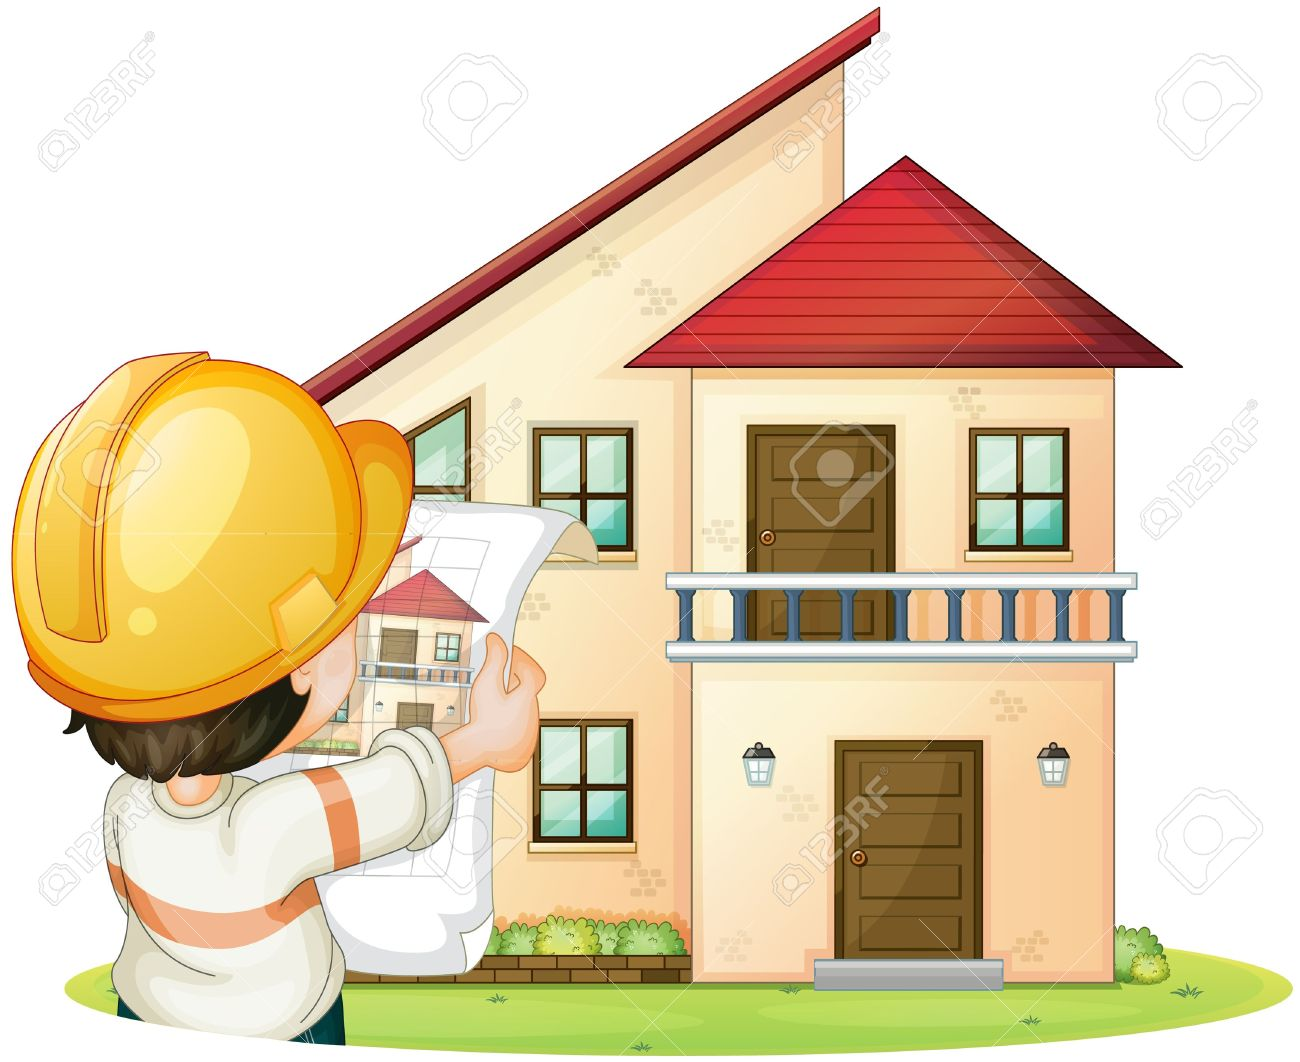 Home builder clipart.